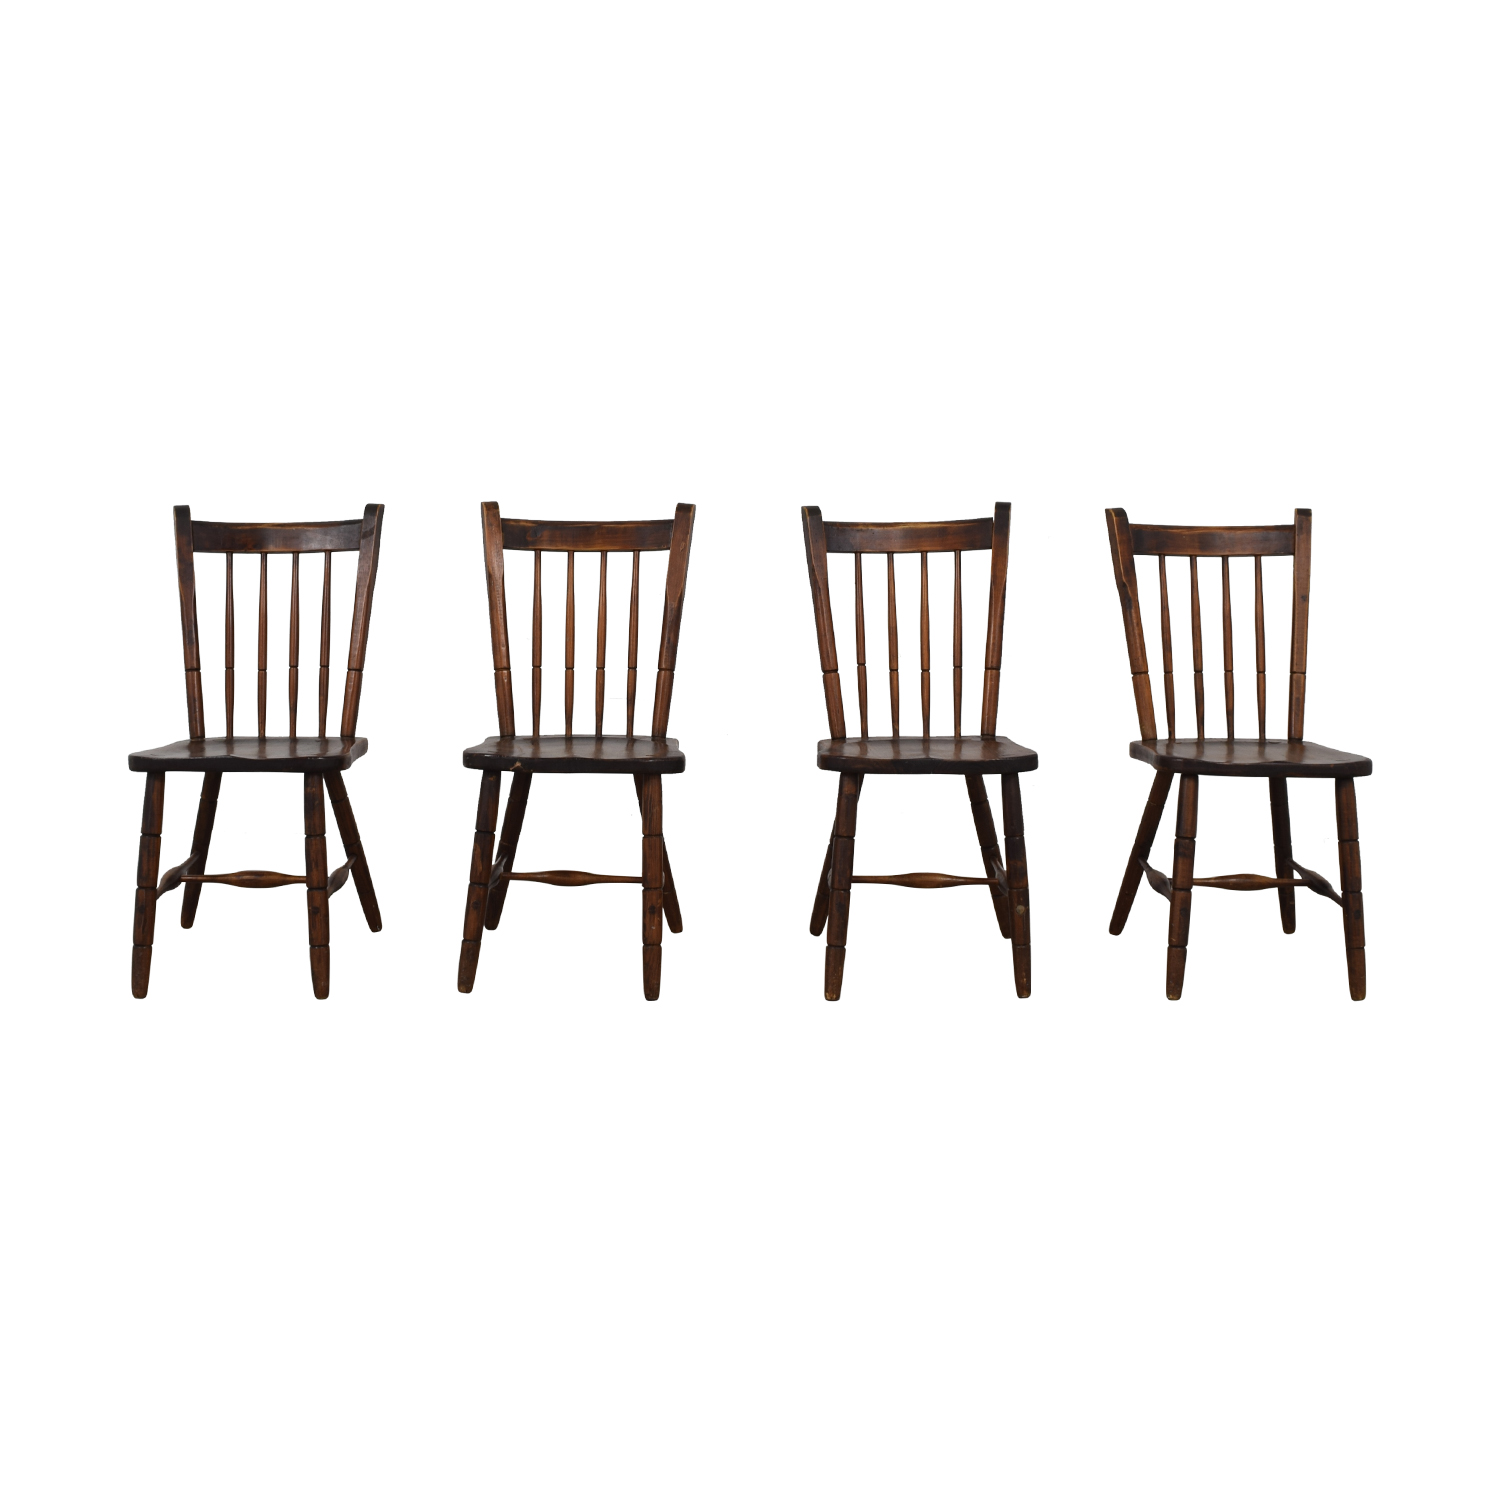 buy  Authentic South African Pine Dining Chairs online